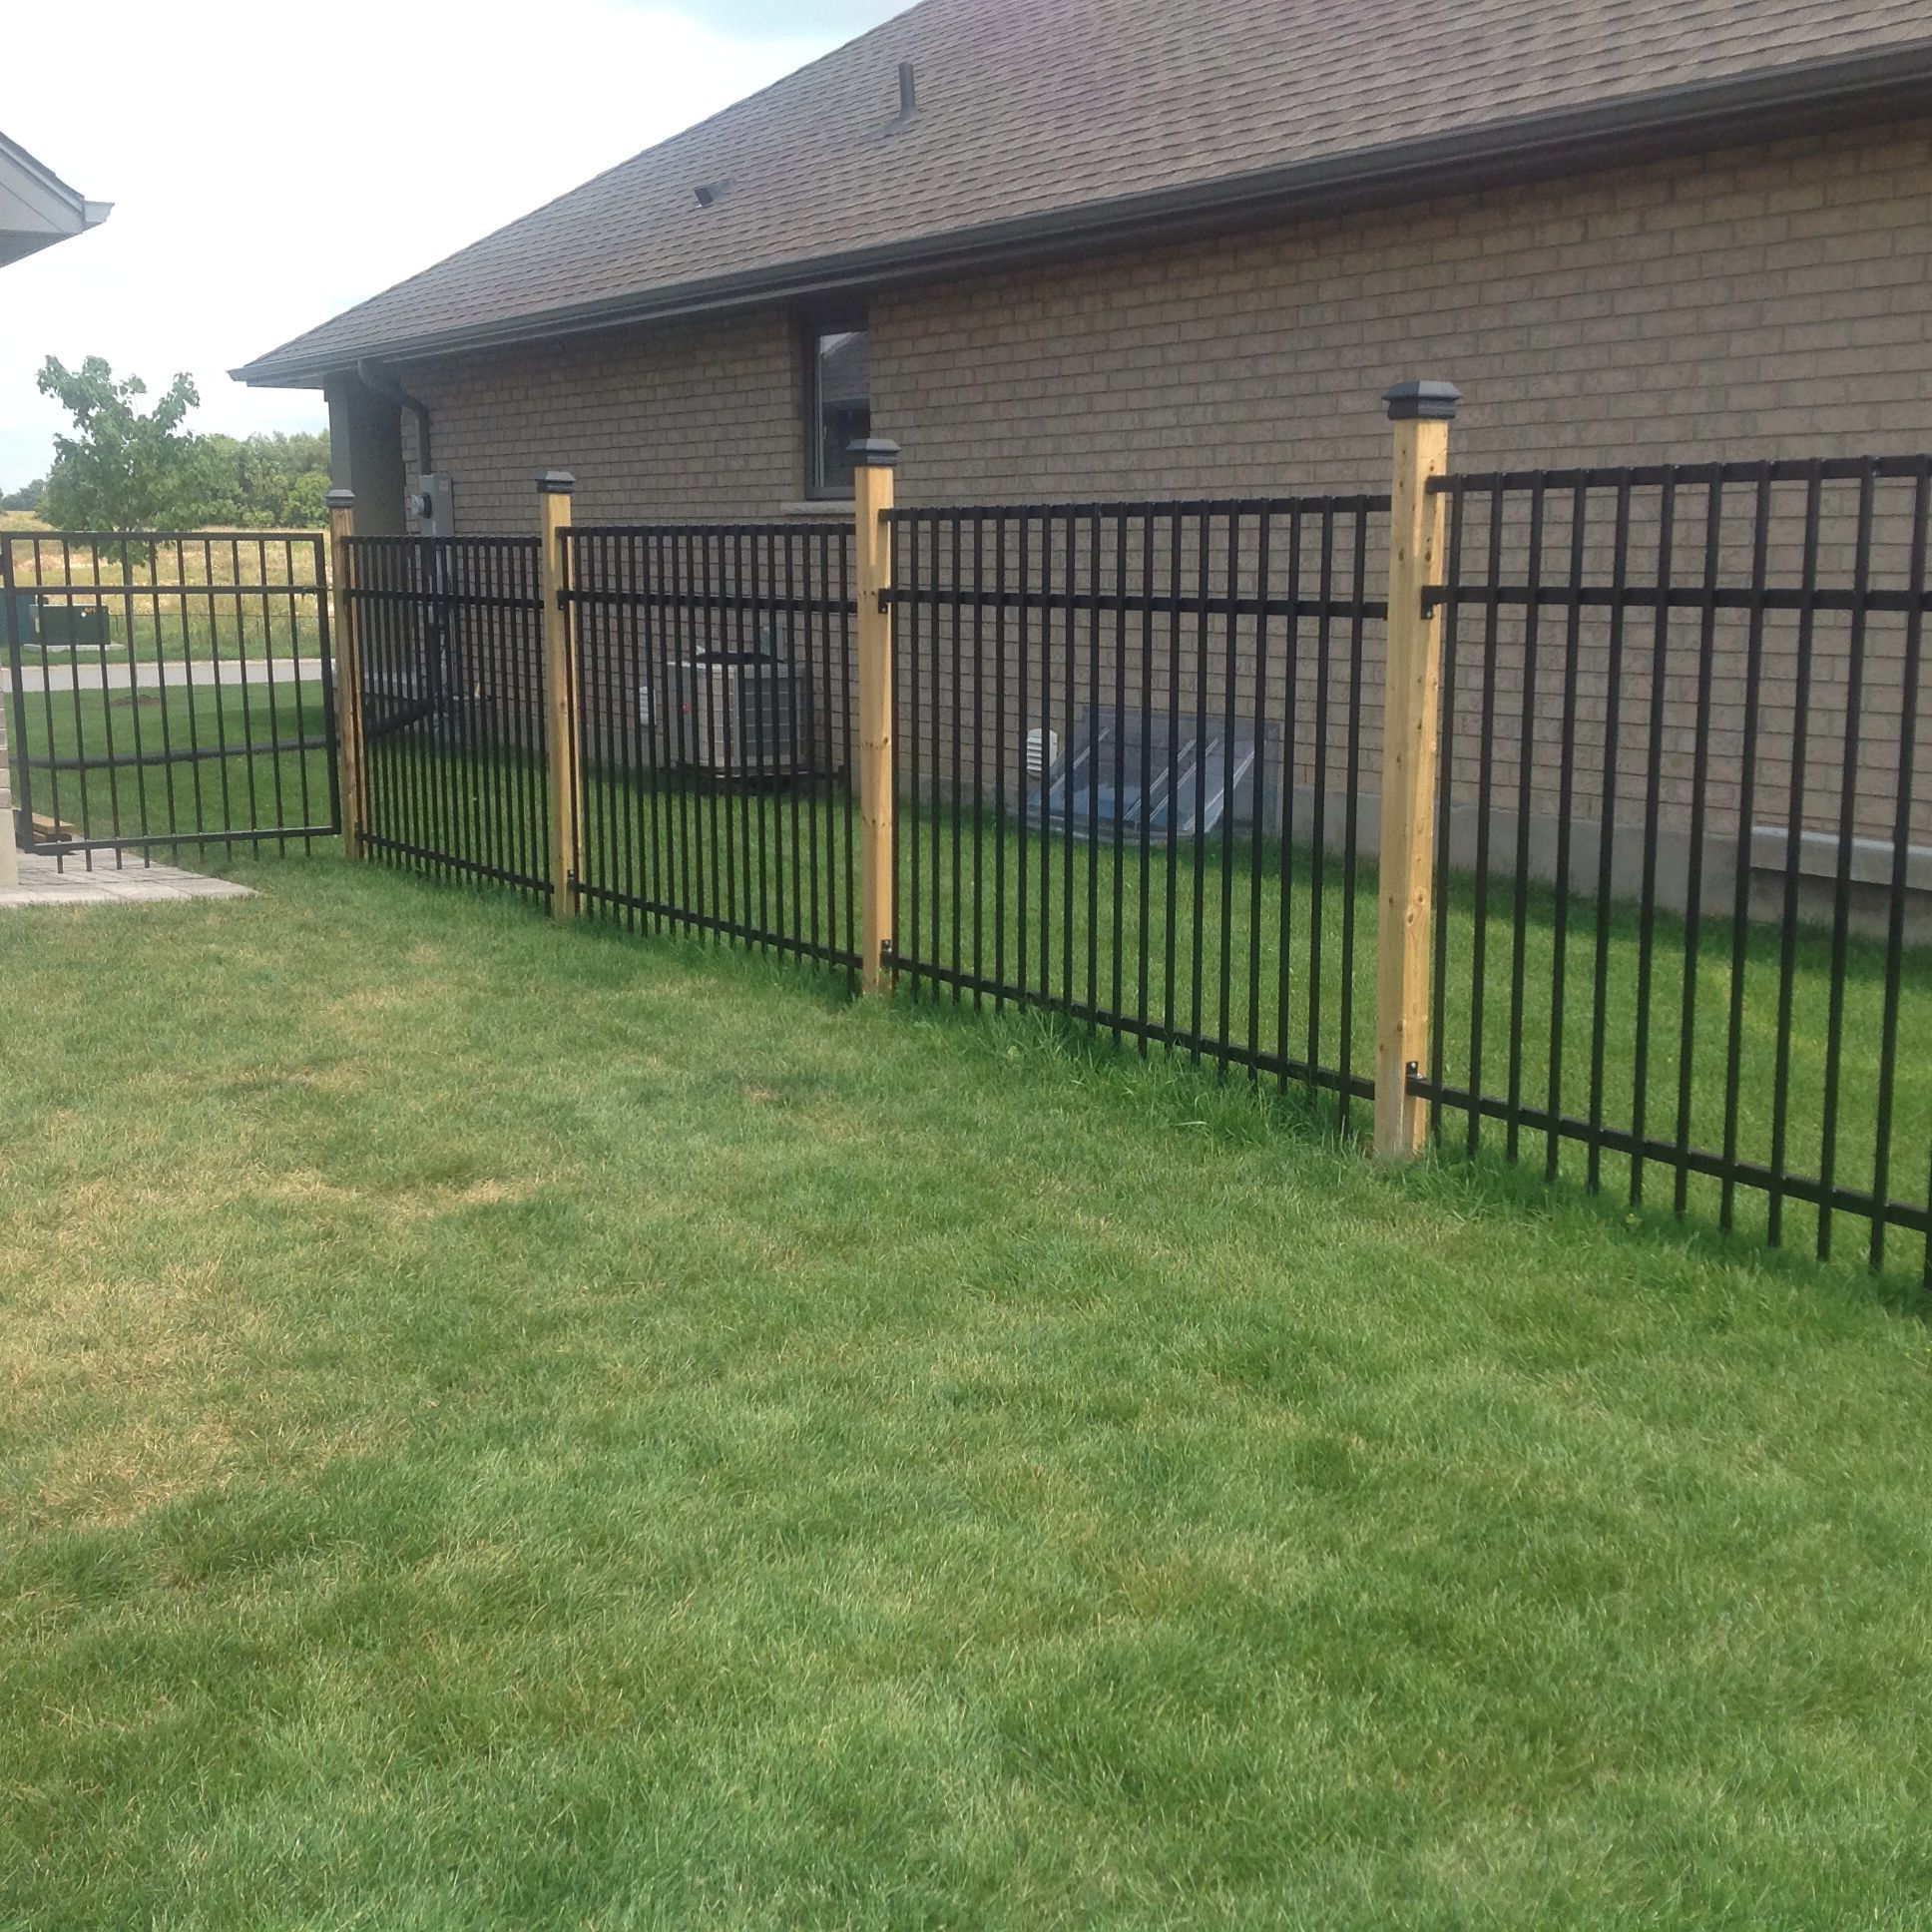 Wrought Iron Fence With 4x4 Wood Posts Black Caps Iron Fence Wrought Iron Fences Aluminum Fence